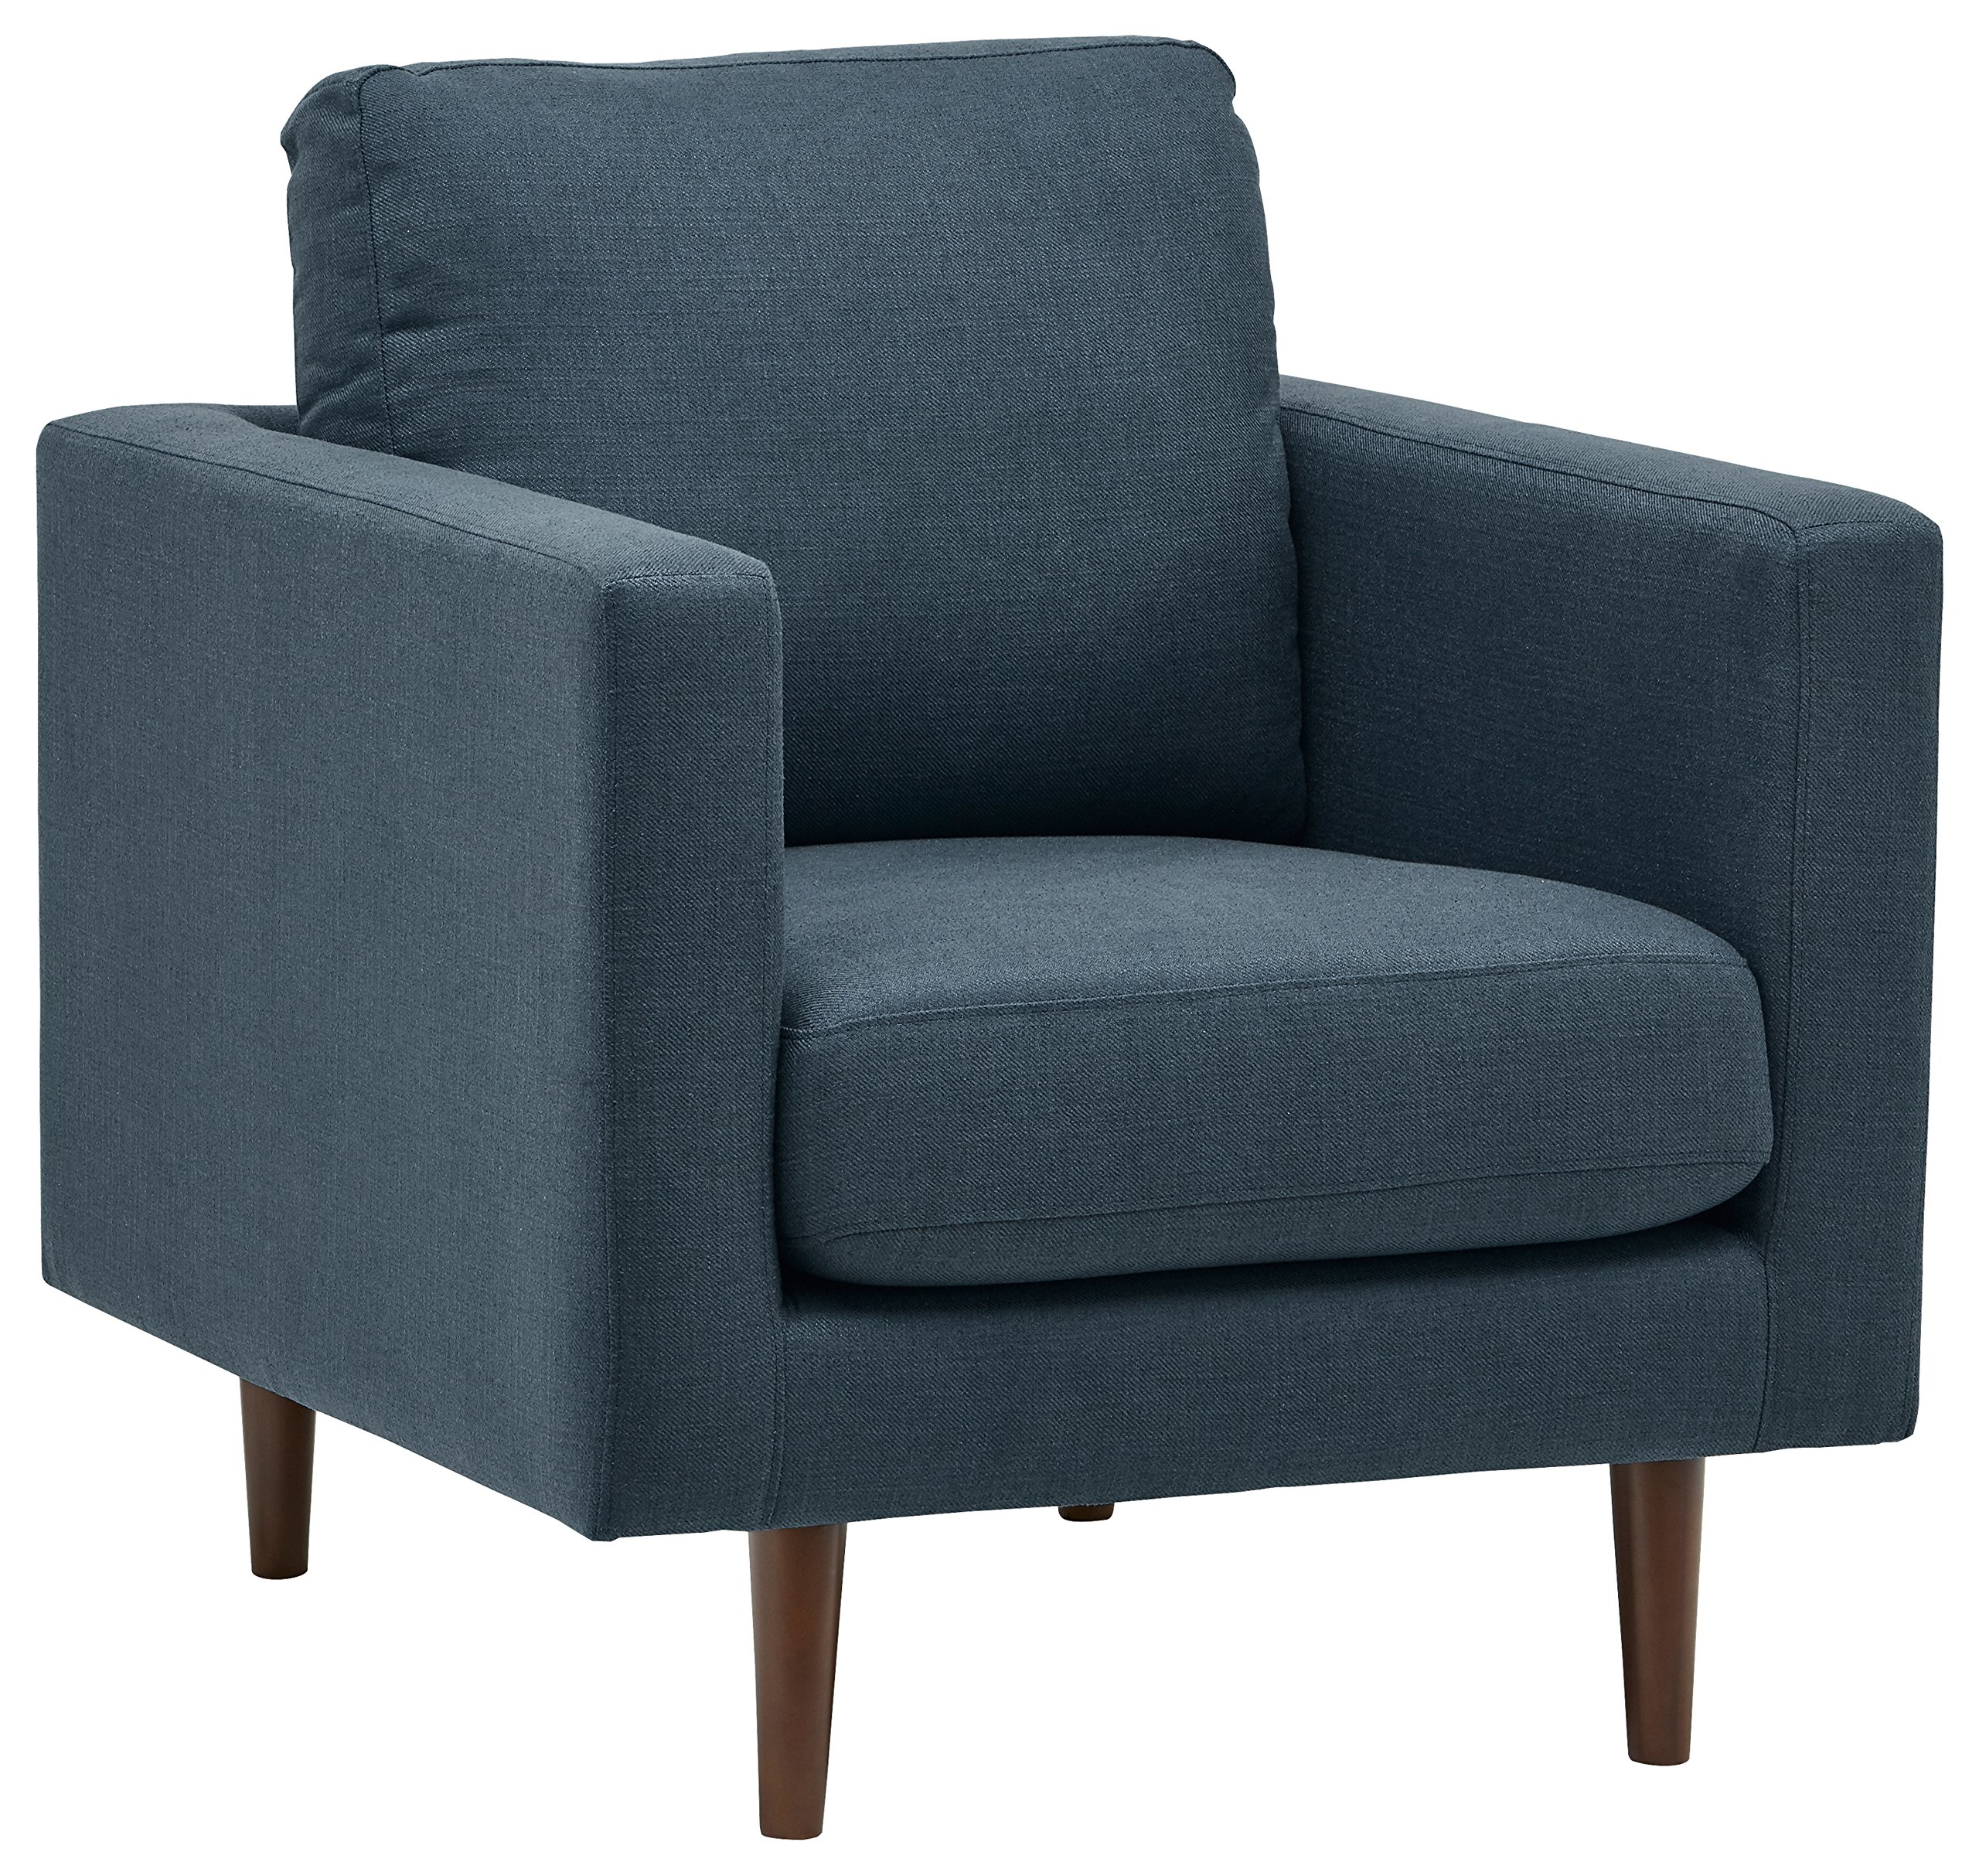 "Rivet Revolve Mid-Century Modern Accent Arm Chair, 32.7""W, Denim - This chair has enough contemporary yet classic elements to blend in with your existing style. Clean lines, comfortable seating and durable fabric give this piece functionality as well as smart design. 34.6""D x 32.7""W x 35.4""H Hardwood frame with solid beech wood legs - living-room-furniture, living-room, accent-chairs - A12vHbfzKHL -"